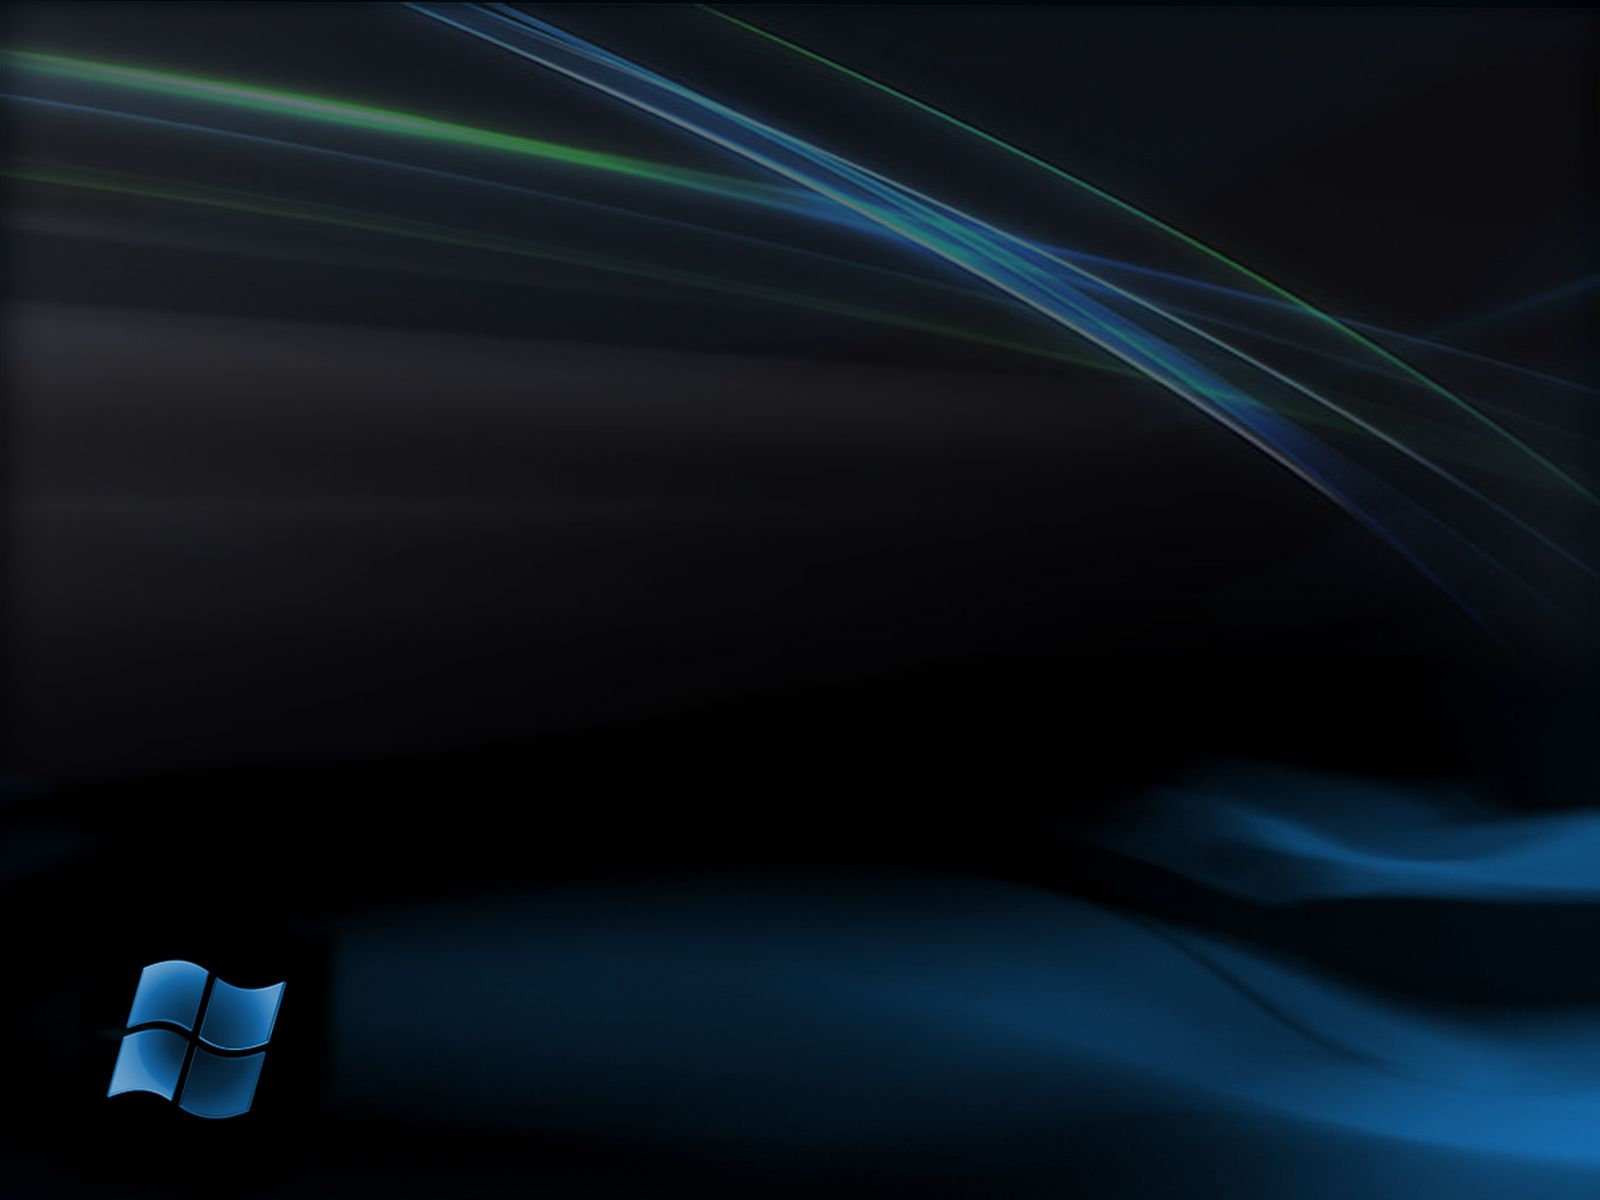 windows 7 ultimate bright black hd desktop wallpaper : widescreen